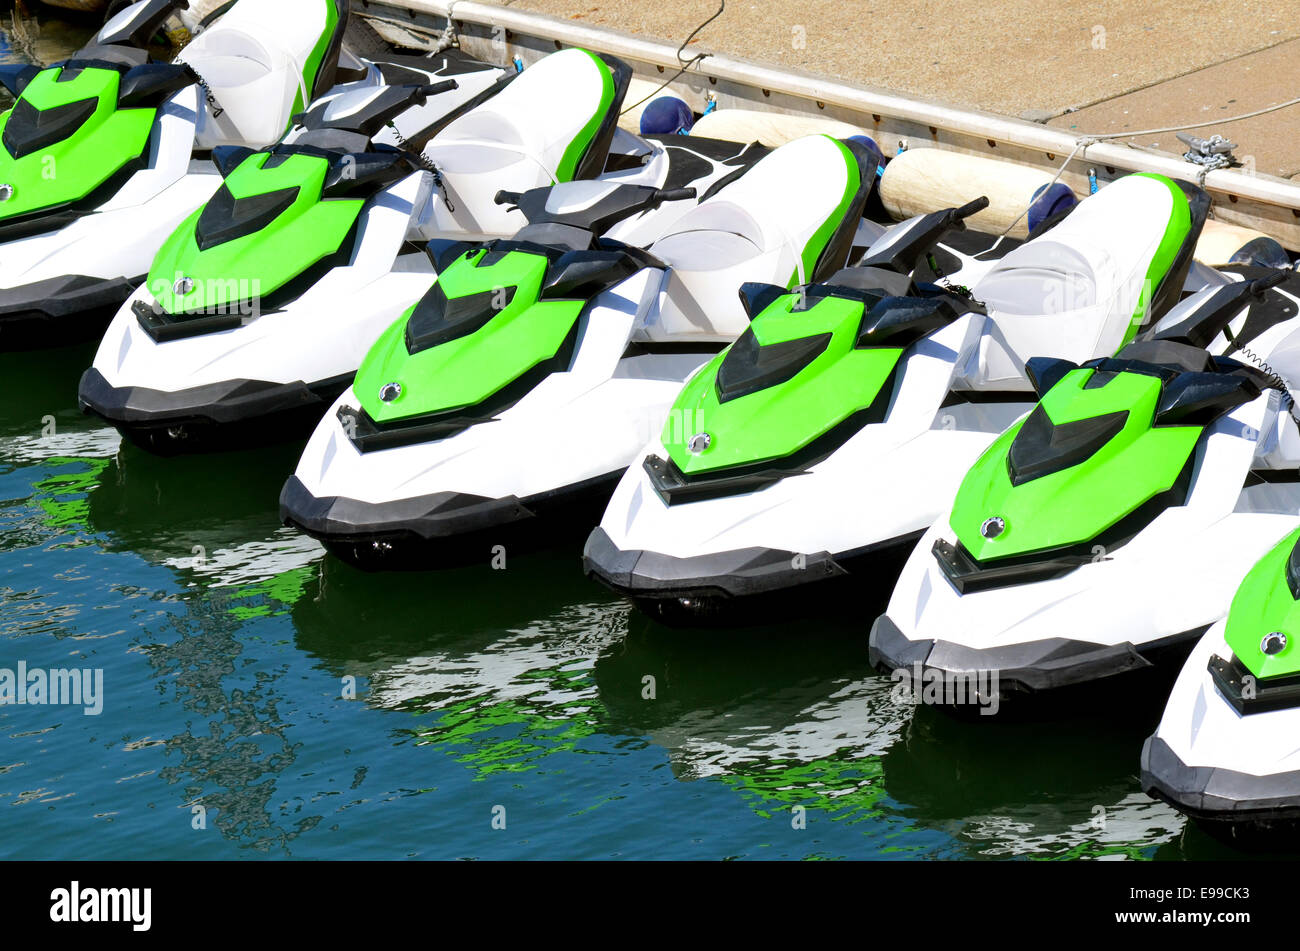 Line of personal watercraft. Concept photo extreme water sport and transportation - Stock Image